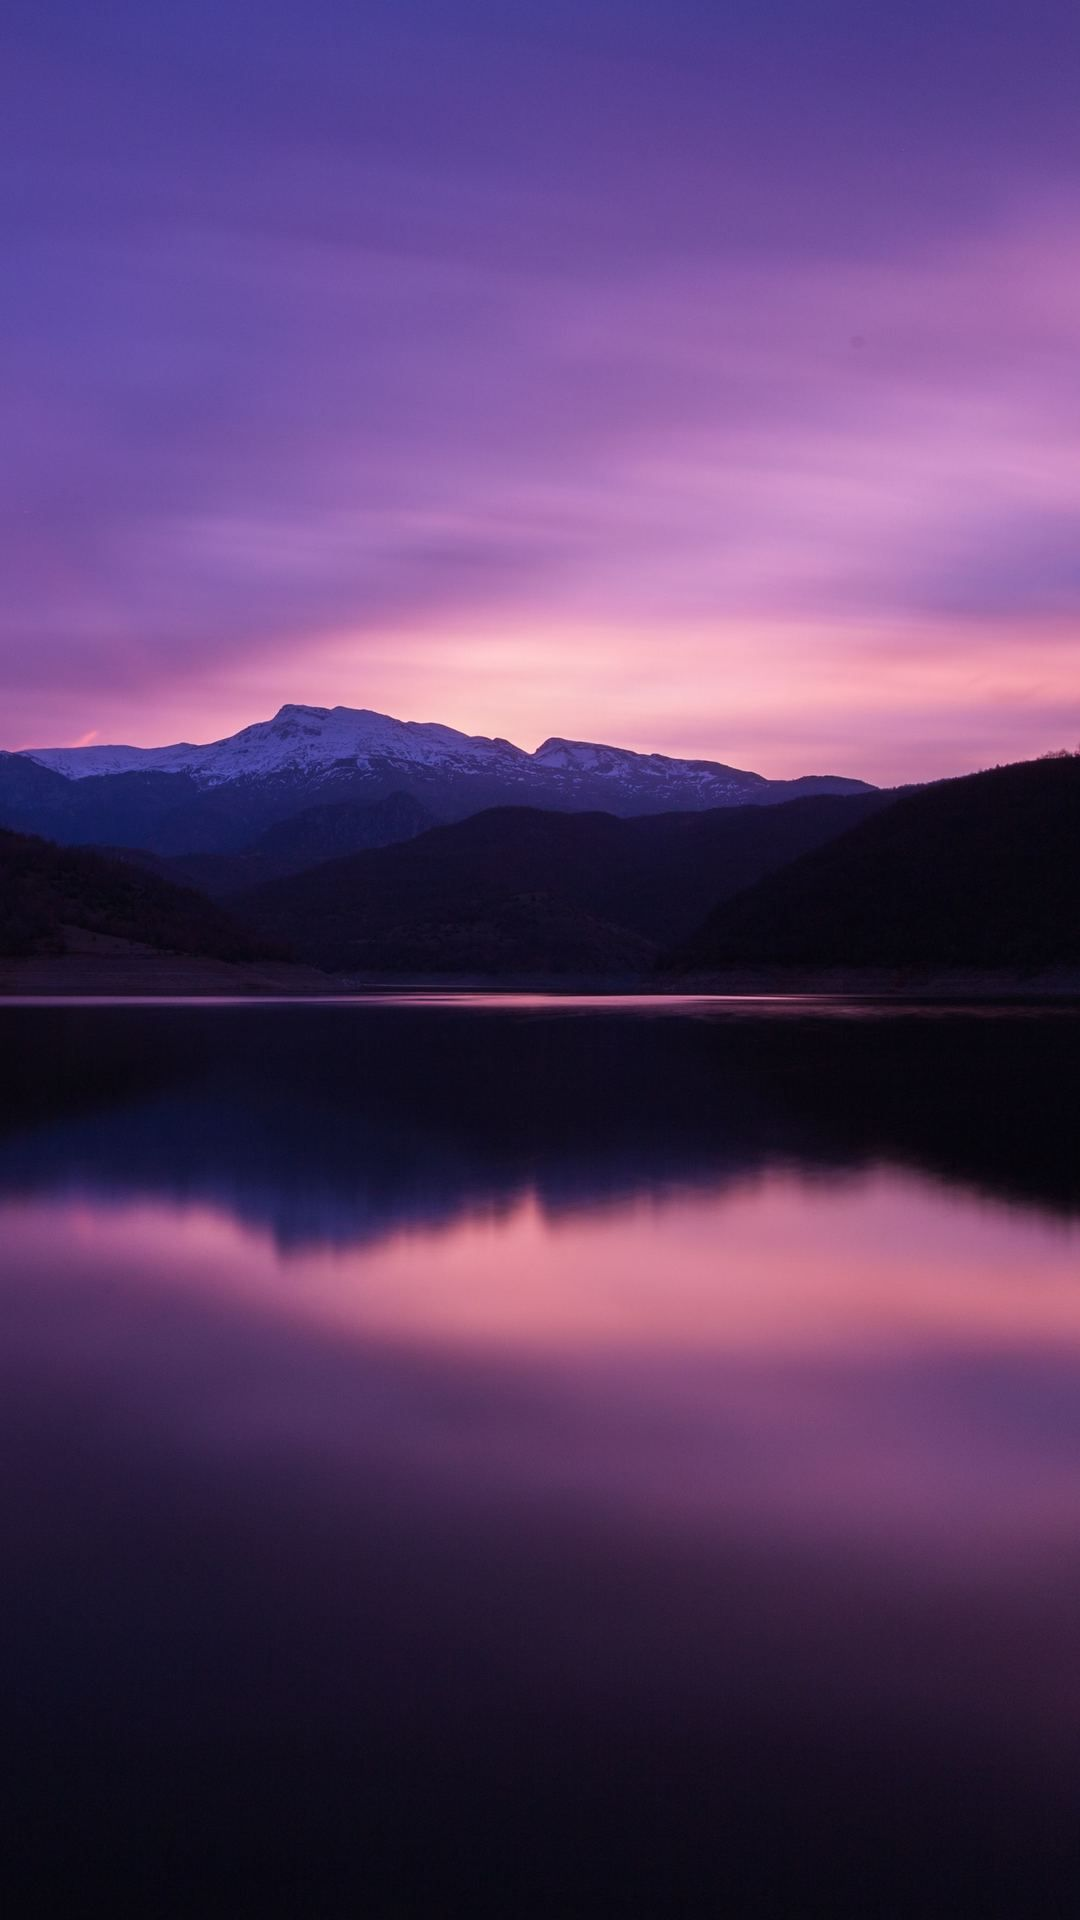 Mountain Lake Night Reflection 5k In 1080x1920 Resolution In